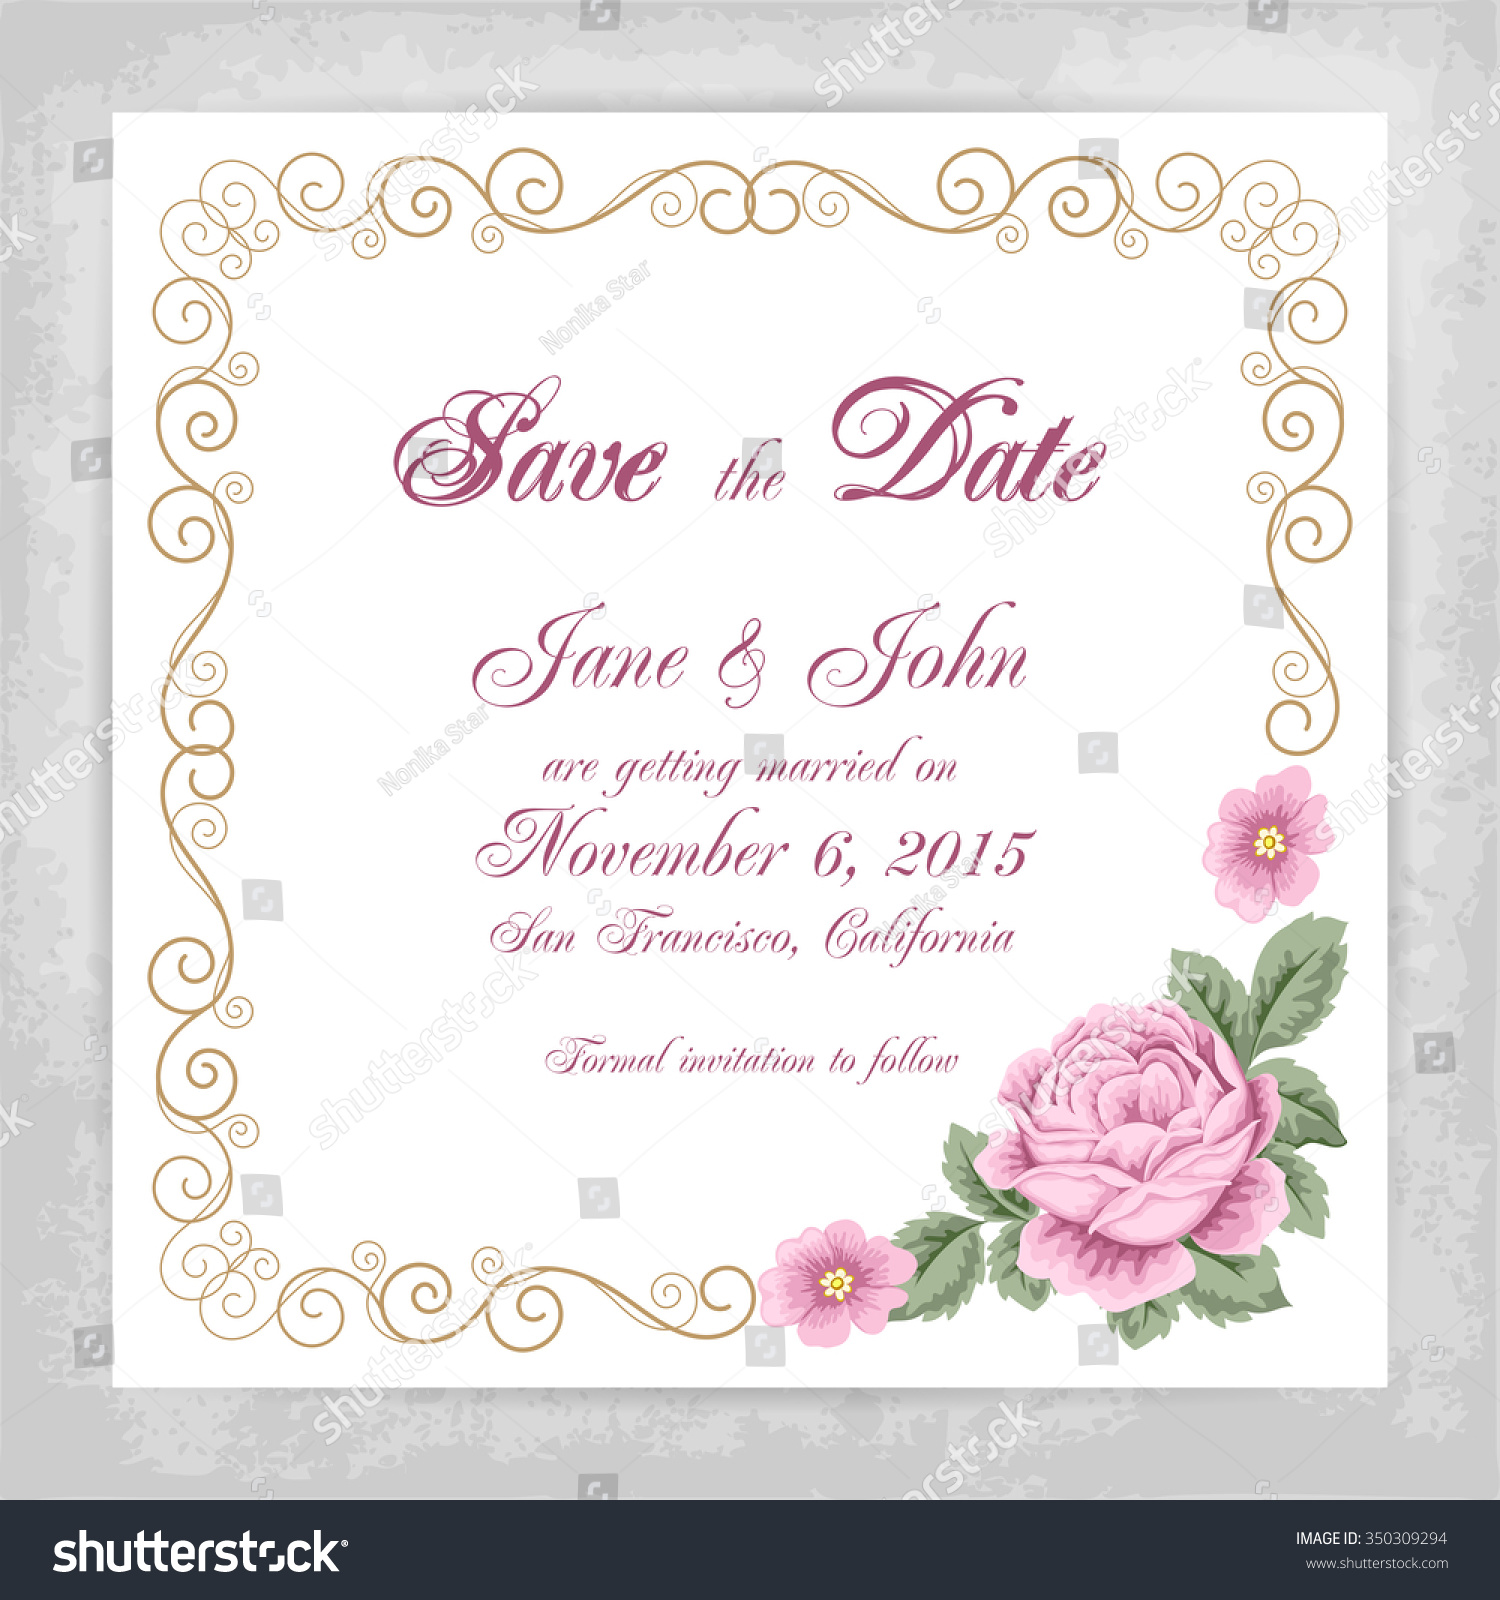 Vintage Wedding Invitation Template Roses Curly Stock Vector HD ...